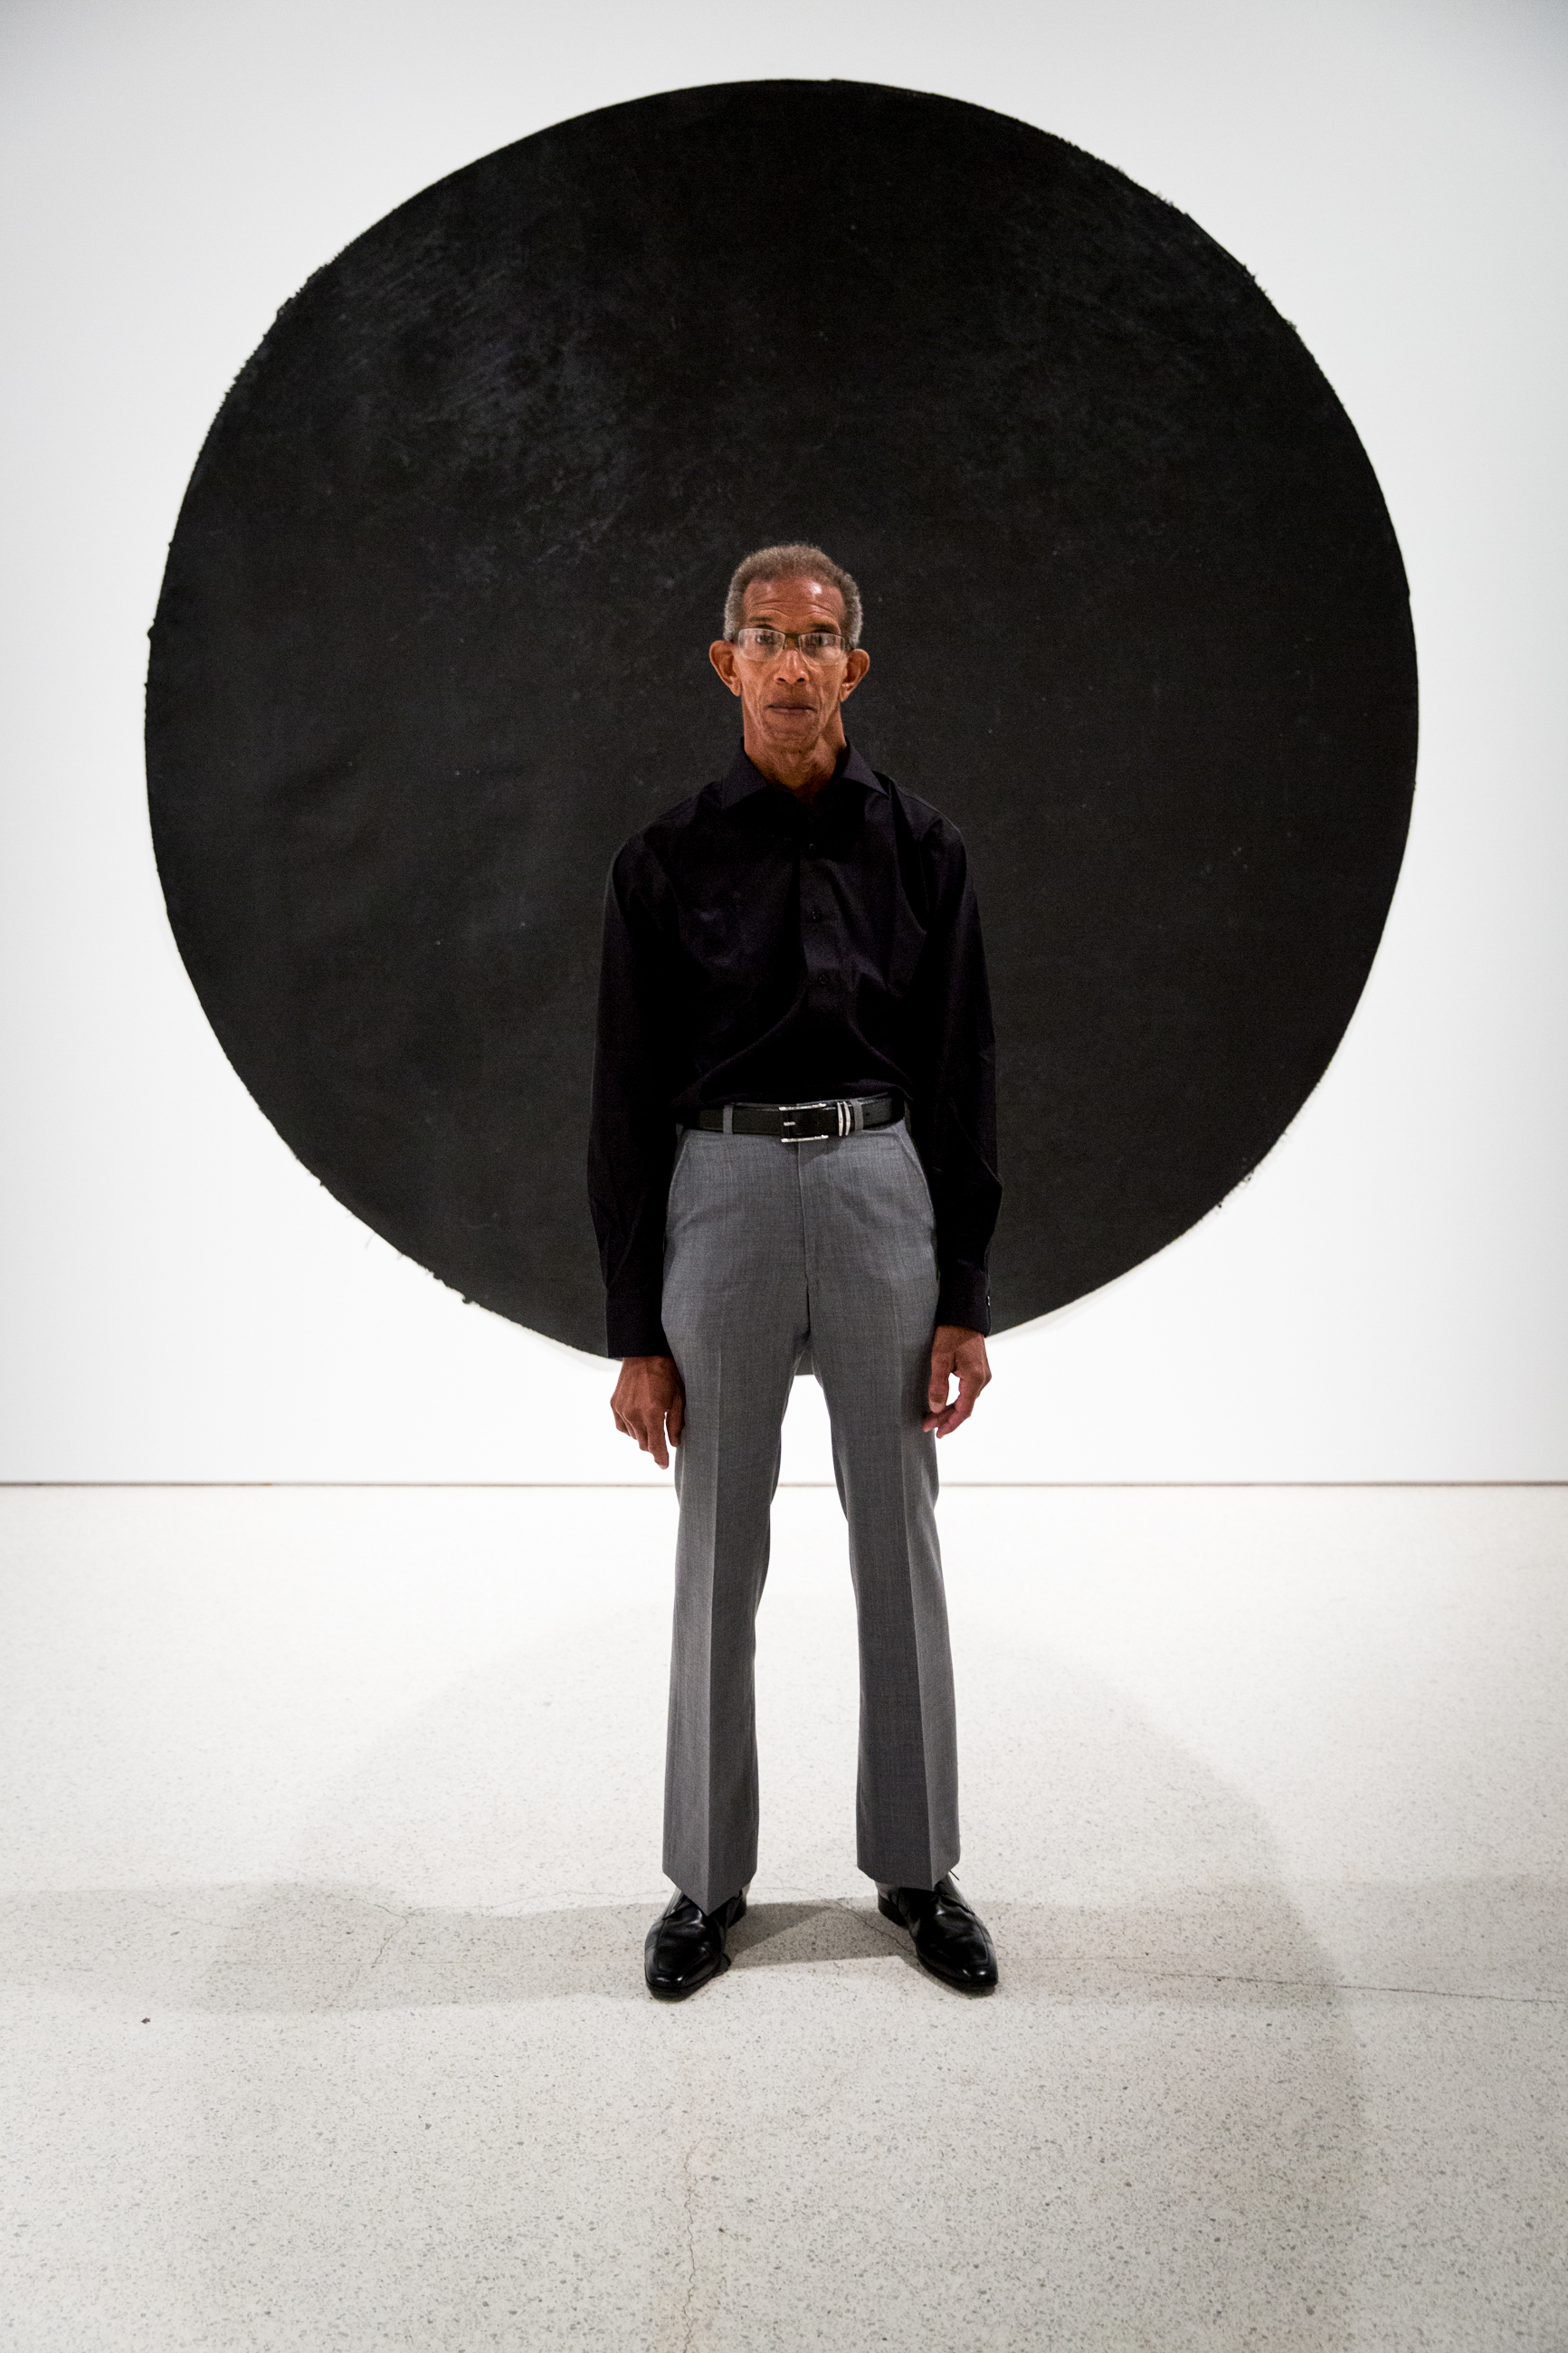 Quentin Morris poses for a portrait in front of his untitled painting during the grand opening of the 20/20 exhibition at the Carnegie Art Museum on Saturday, July 22, 2017 in Pittsburgh. The 20/20 exhibition is an exploration of race in America, and features work by many black artists from around the country.